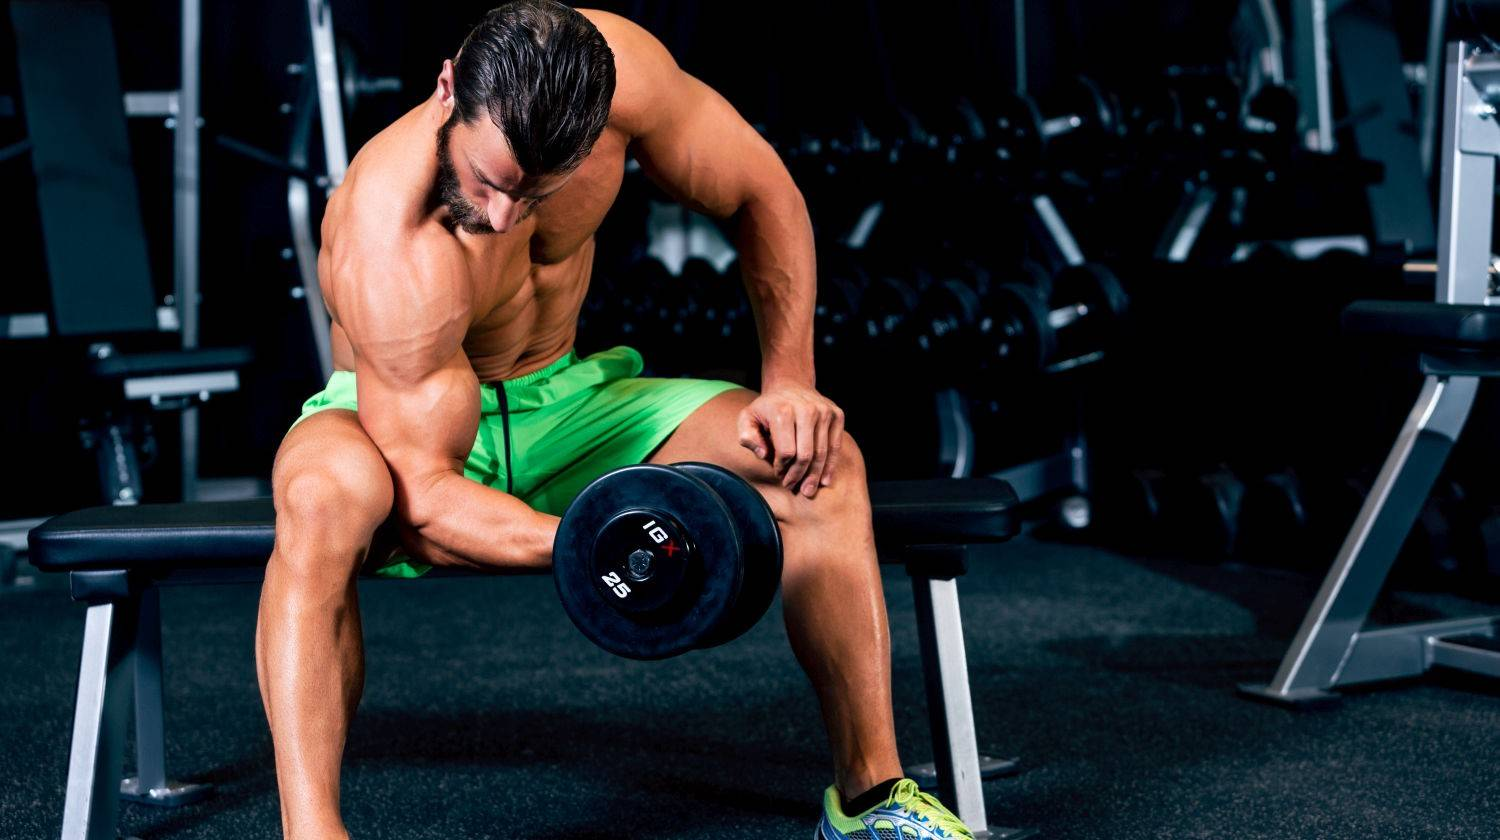 Ambassador Tim McComsey doing bicep curls in the gym   Muscle Building Diet: Best Foods to Eat For Muscles and Fast Recovery   Featured   best foods for gaining muscle